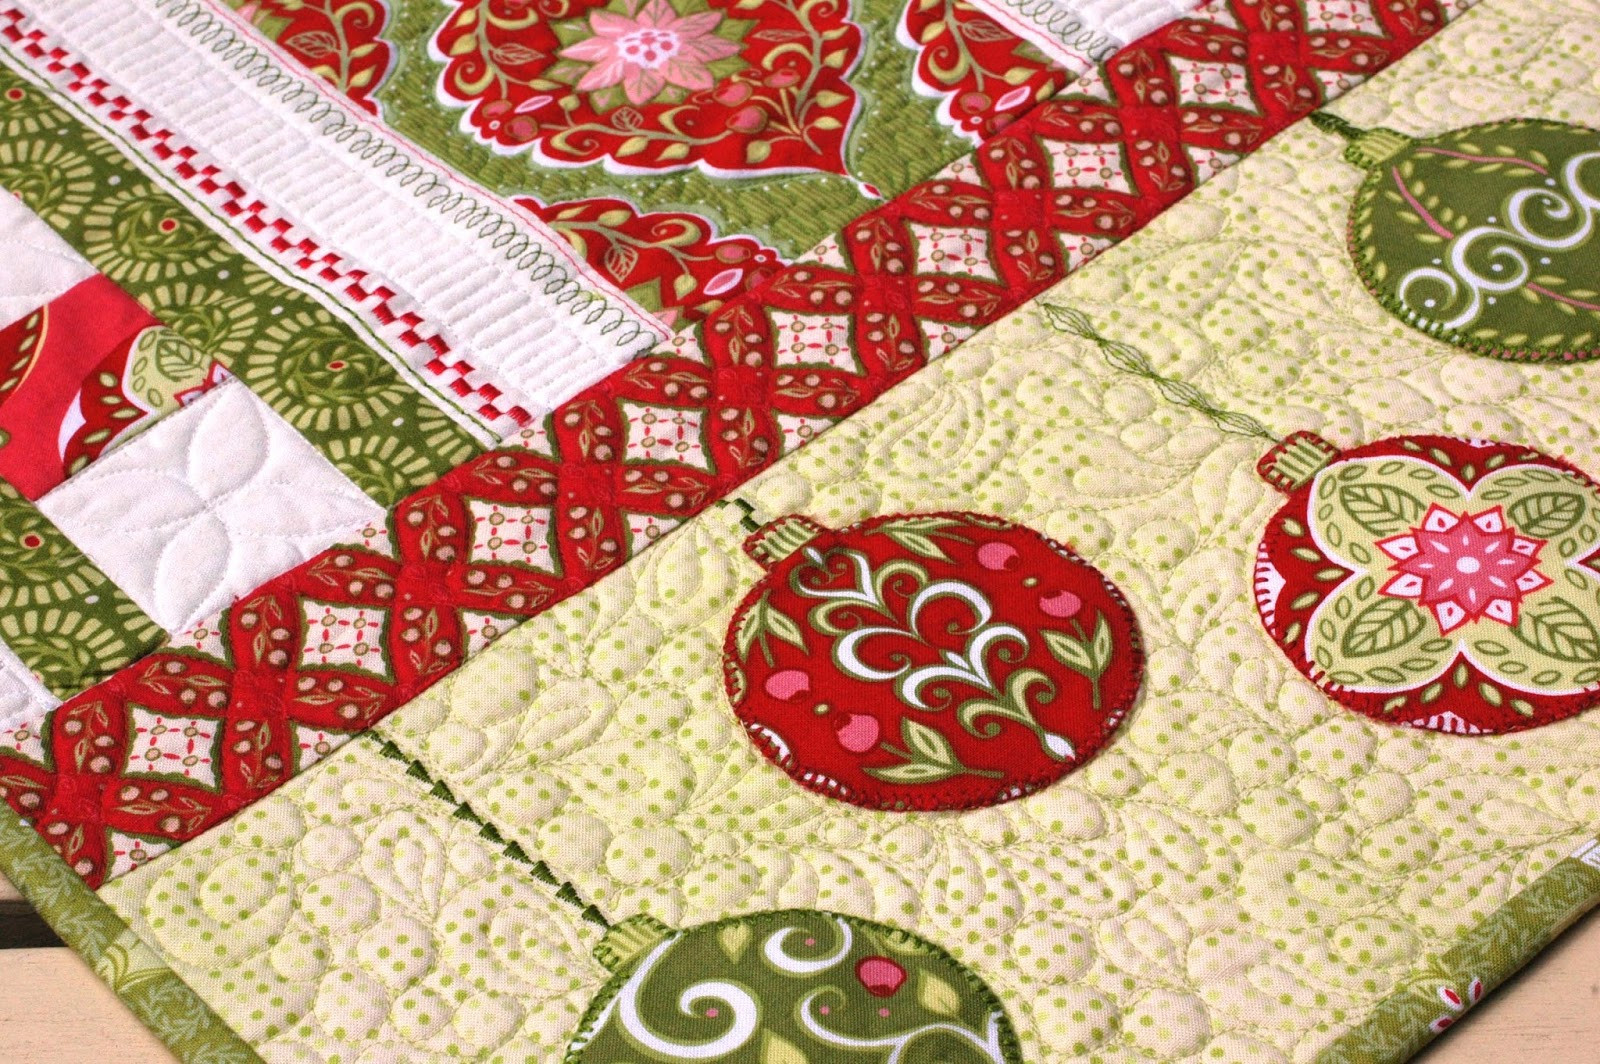 Free Christmas Table Runner Patterns  Amanda Murphy Design plimentary Holiday Bouquet Table